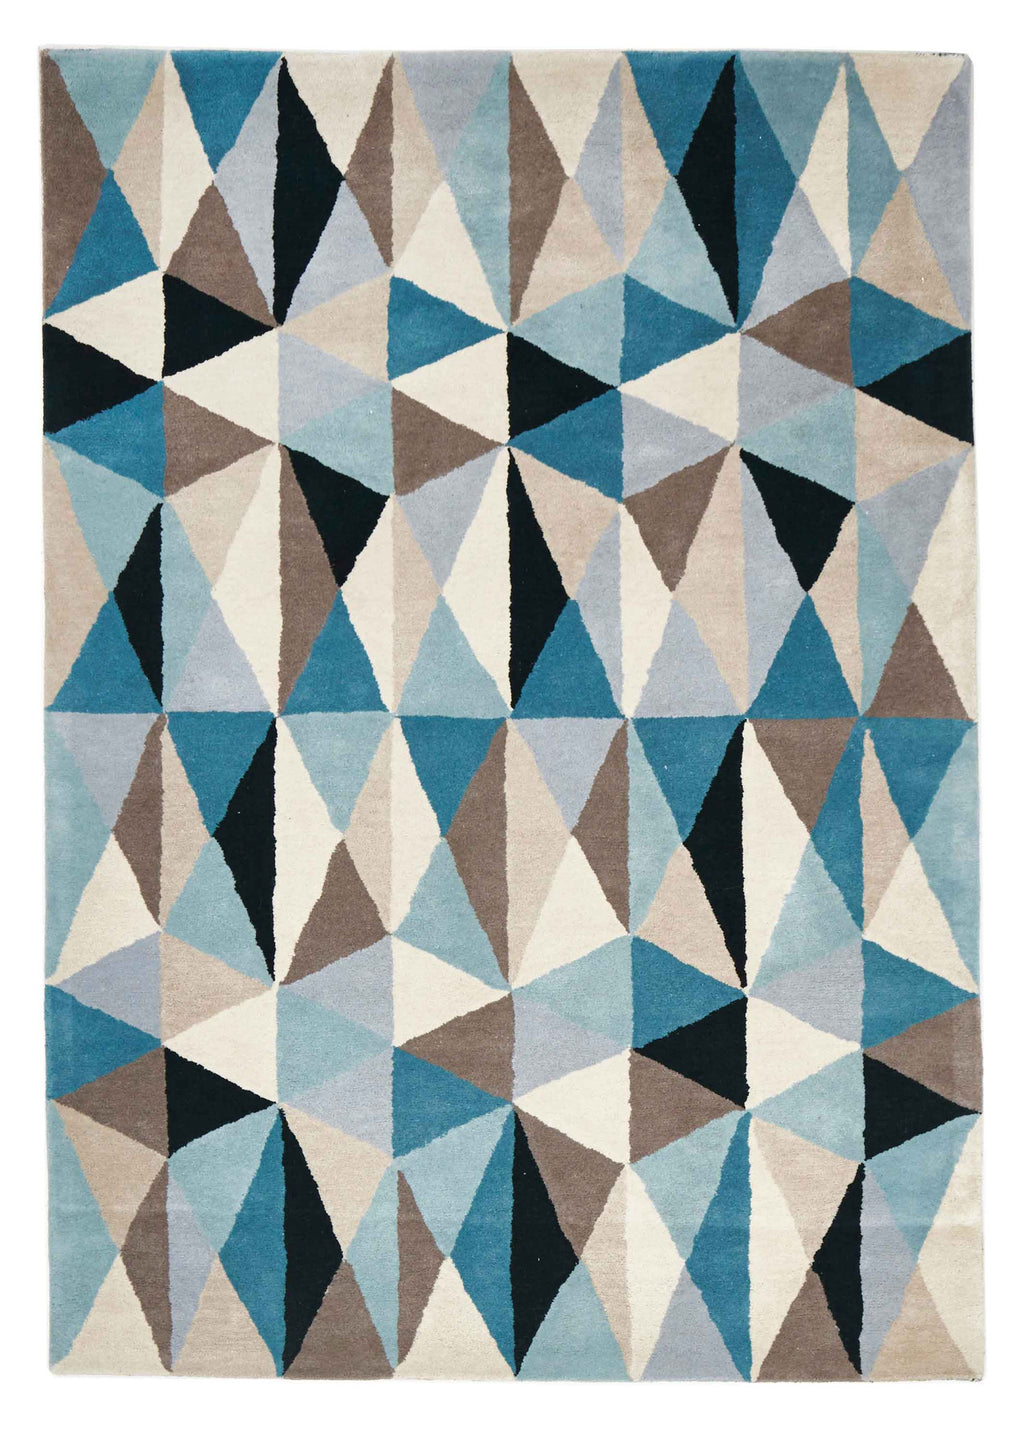 Laura Gem Stone Designer Wool Rug Blue